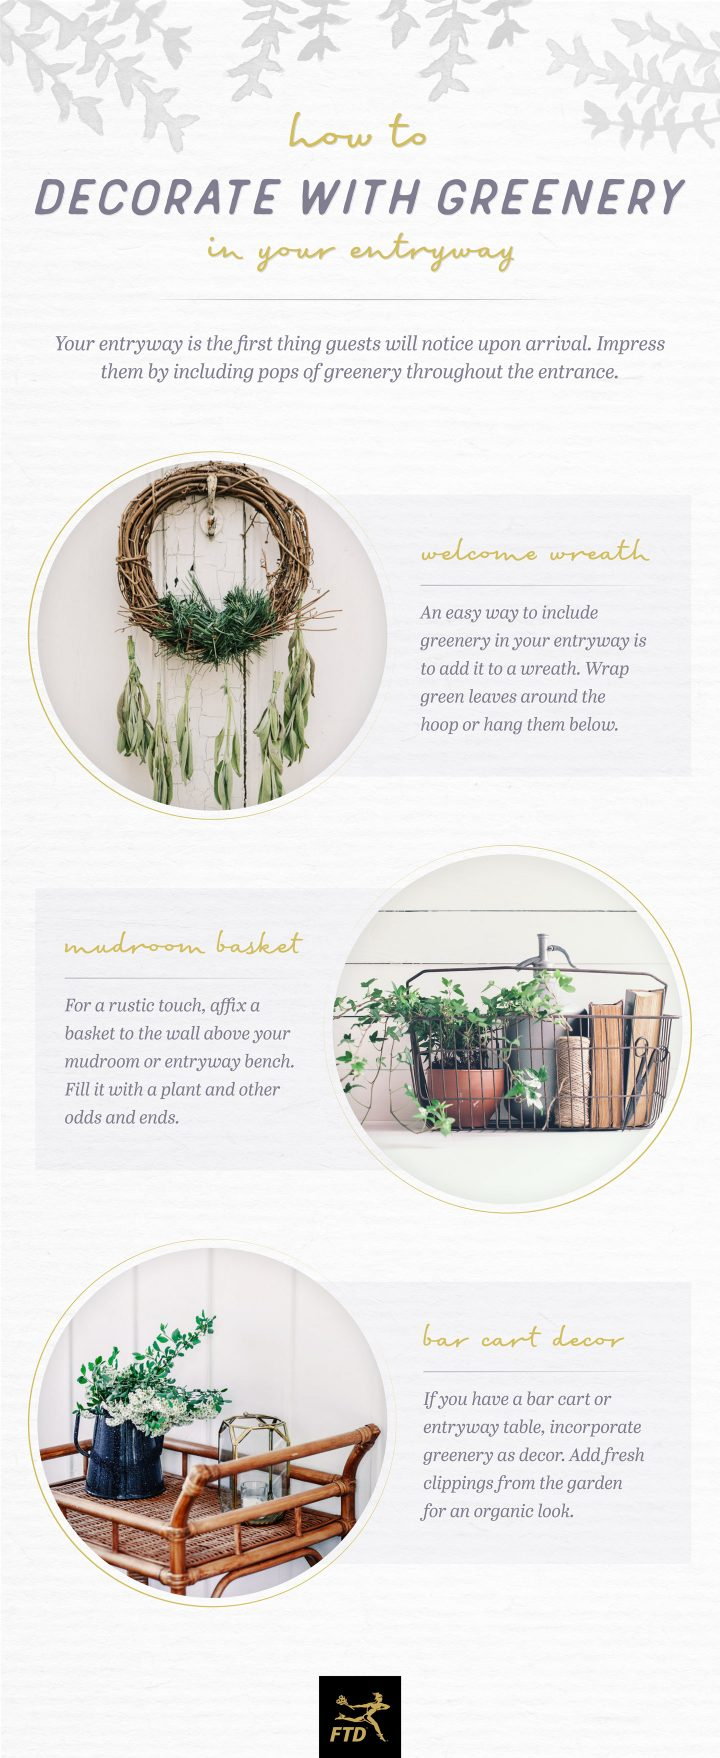 Decorate with Greenery - Your Entryway